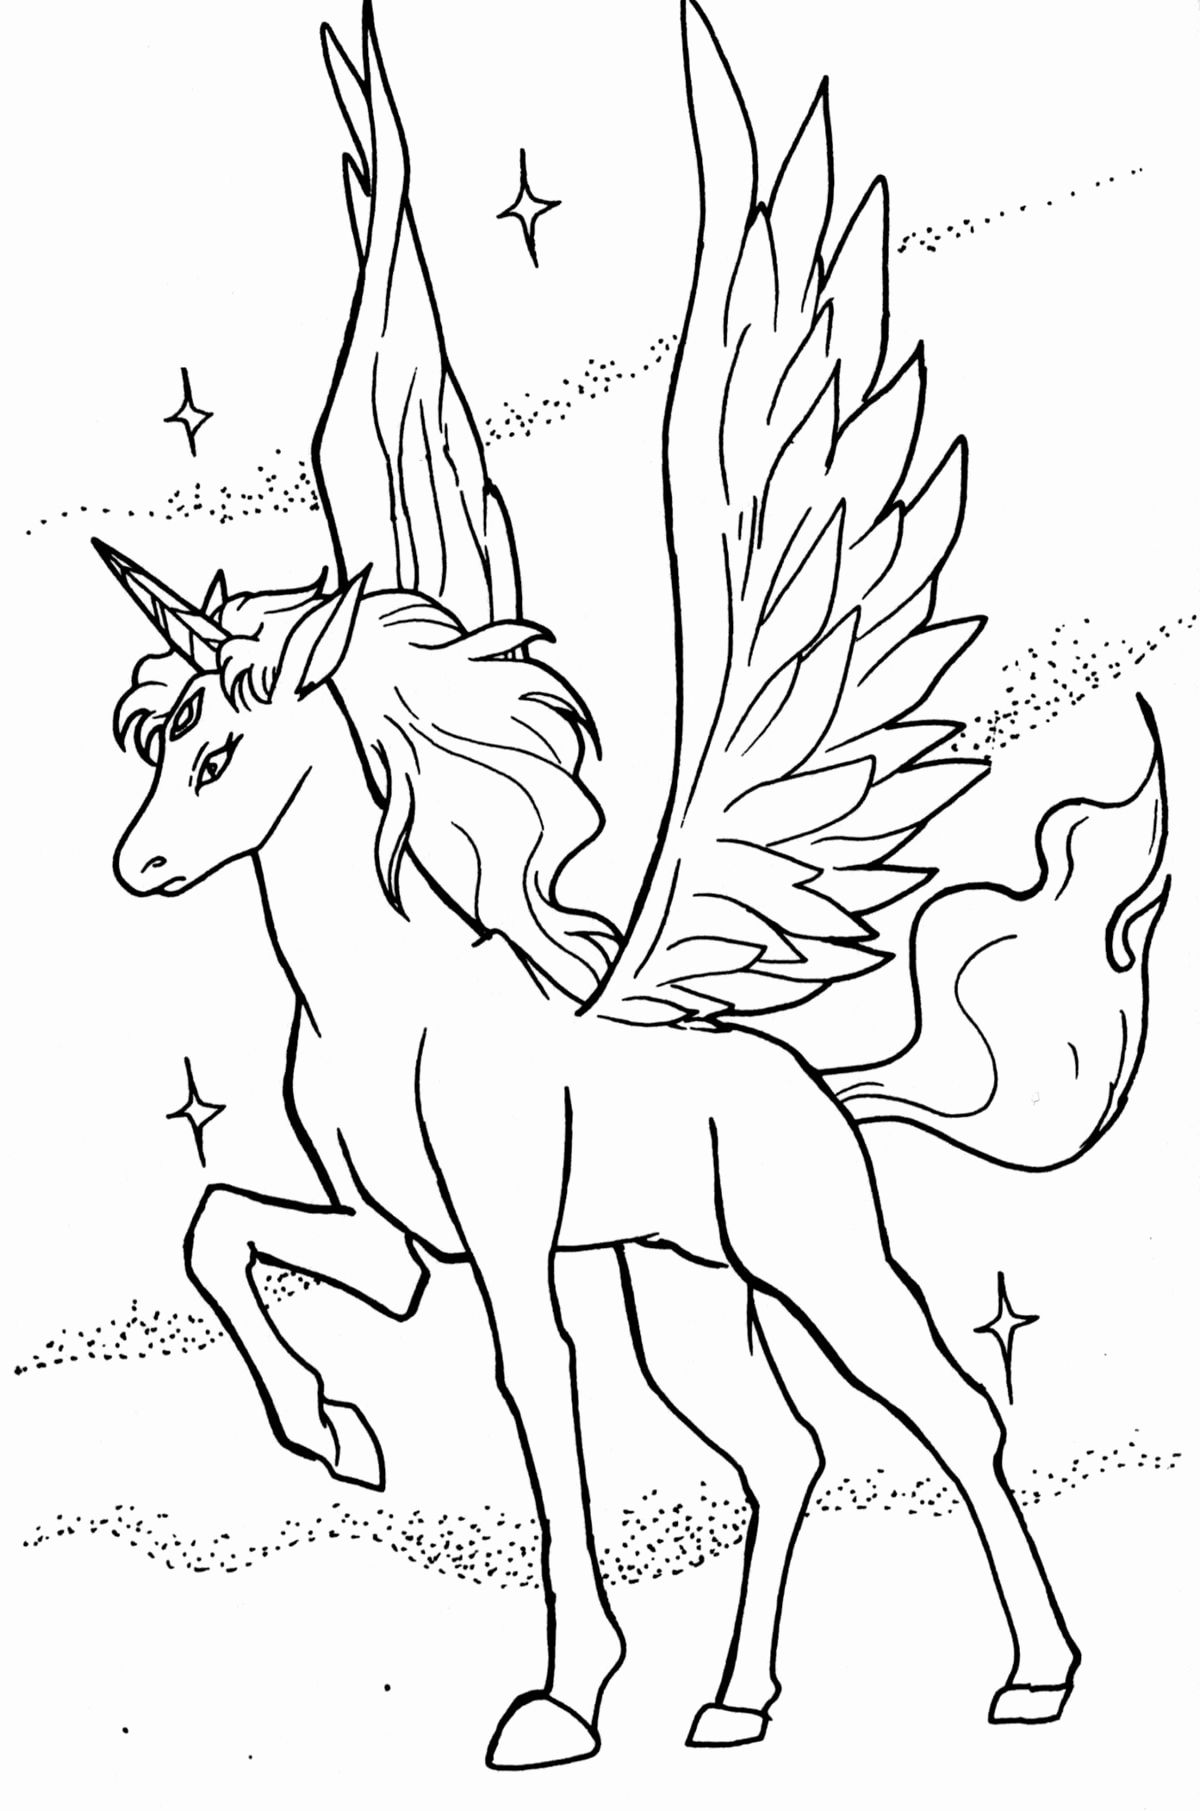 Alicorn Coloring Pages Lovely Unicorn Coloring Pages 100 Black And White Print In 2020 Sailor Moon Coloring Pages Horse Coloring Pages Moon Coloring Pages